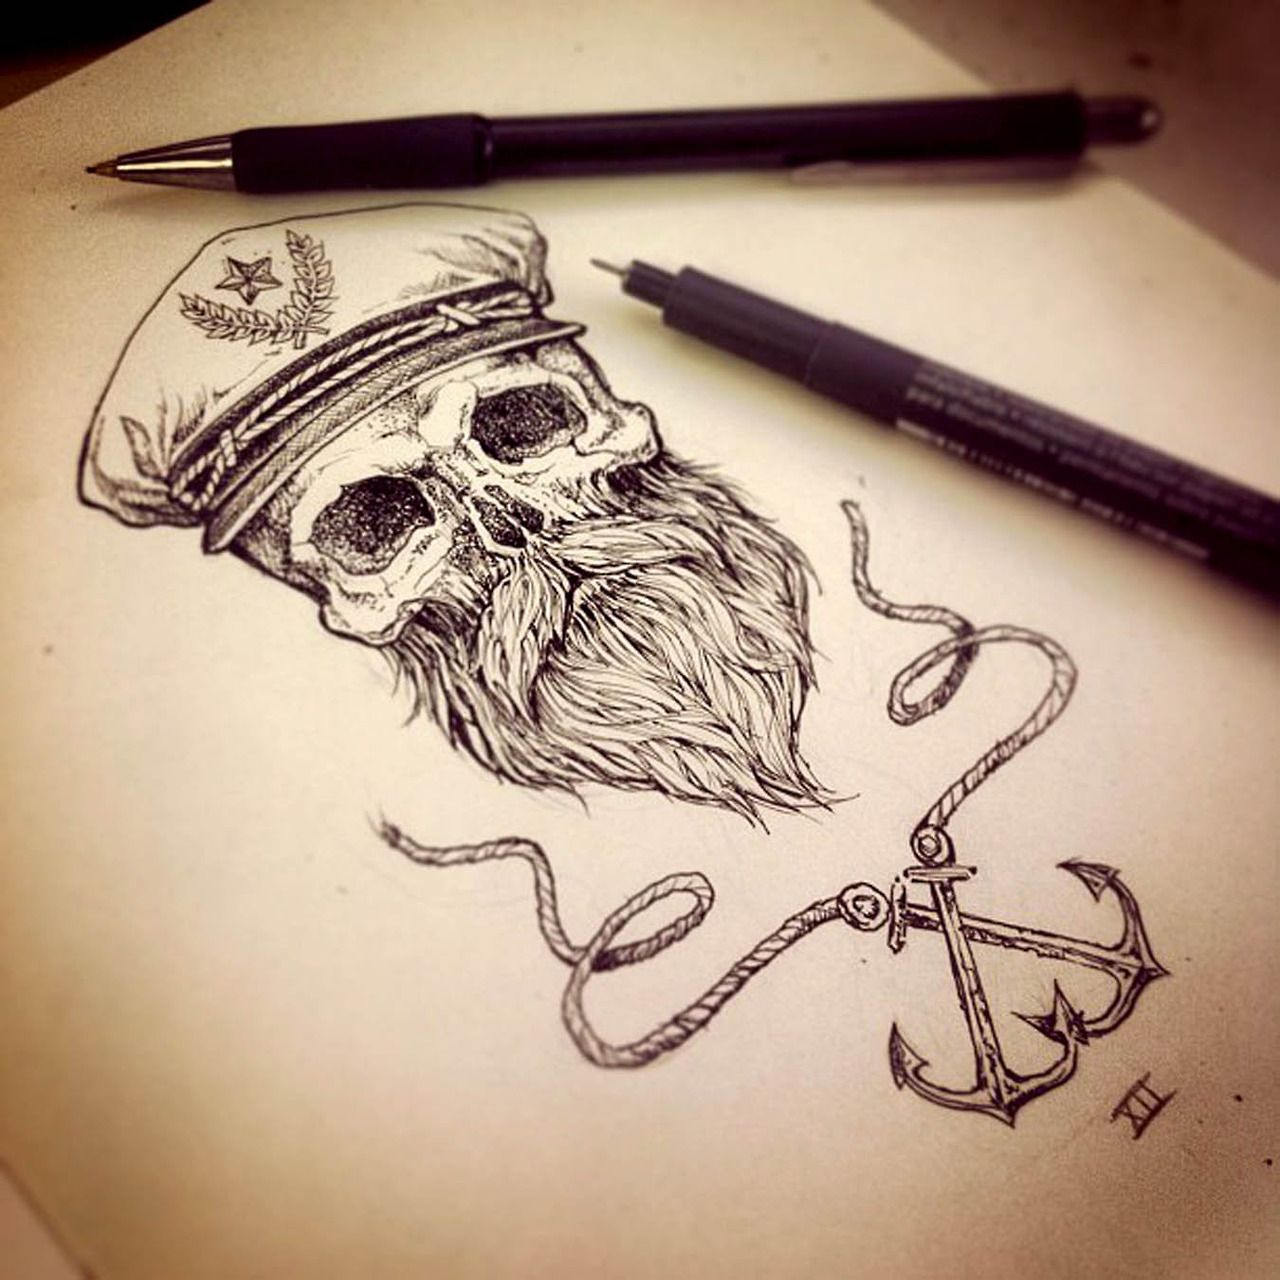 illustration inspiration beard art awesome beards and anchor tattoos. Black Bedroom Furniture Sets. Home Design Ideas